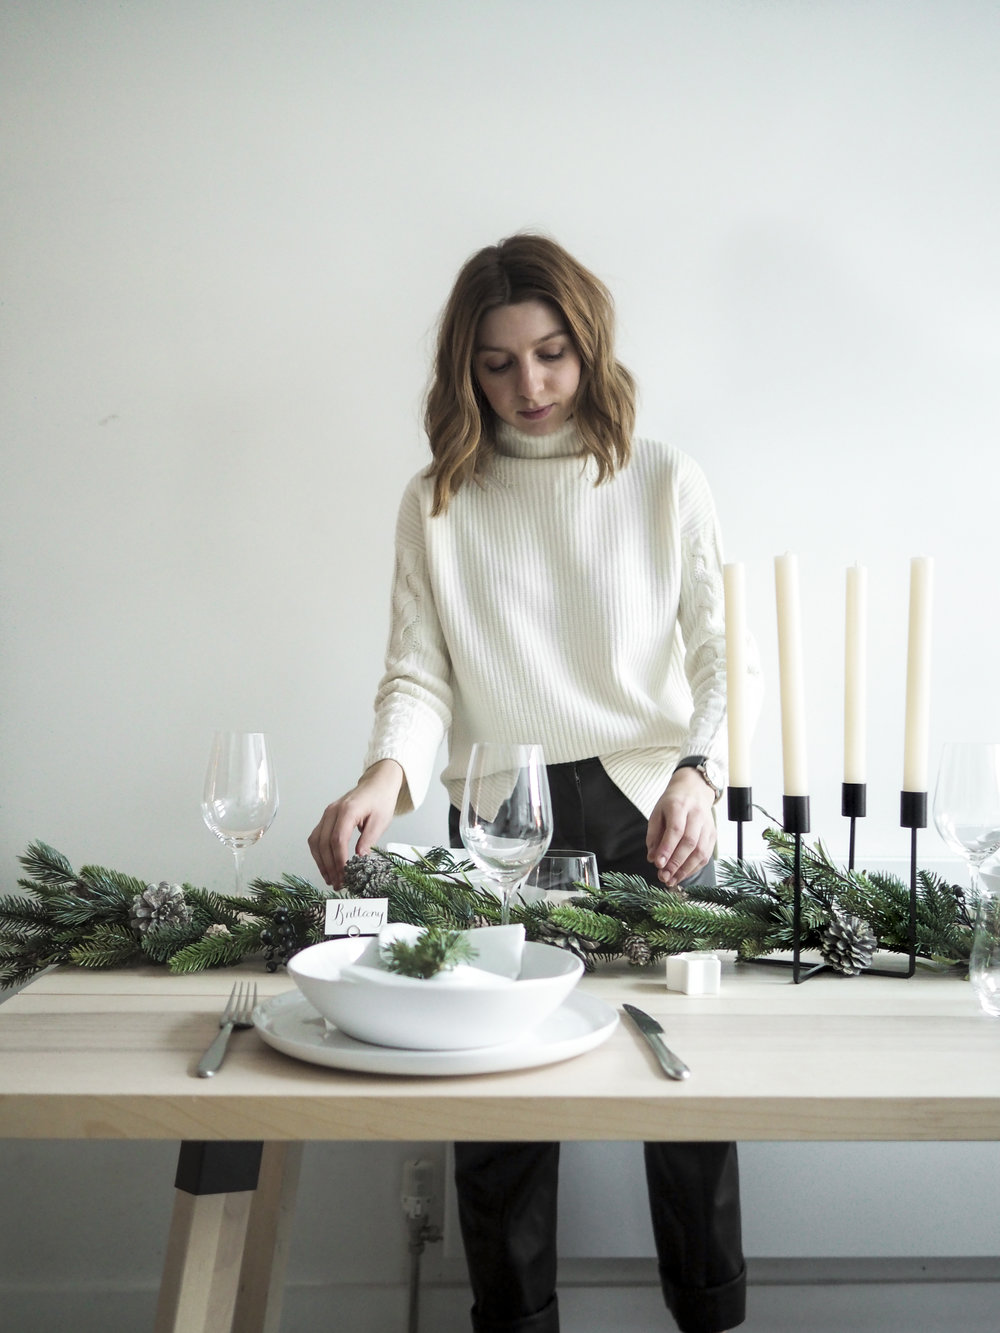 Wool Cable Jumper  /  Belgravia Wine Glasses  /  Pure Dinner Candles  /  Pine Cone Garland  /  Winter Star Tealights  /  Place Card Holders  /  Pine Cone Garland